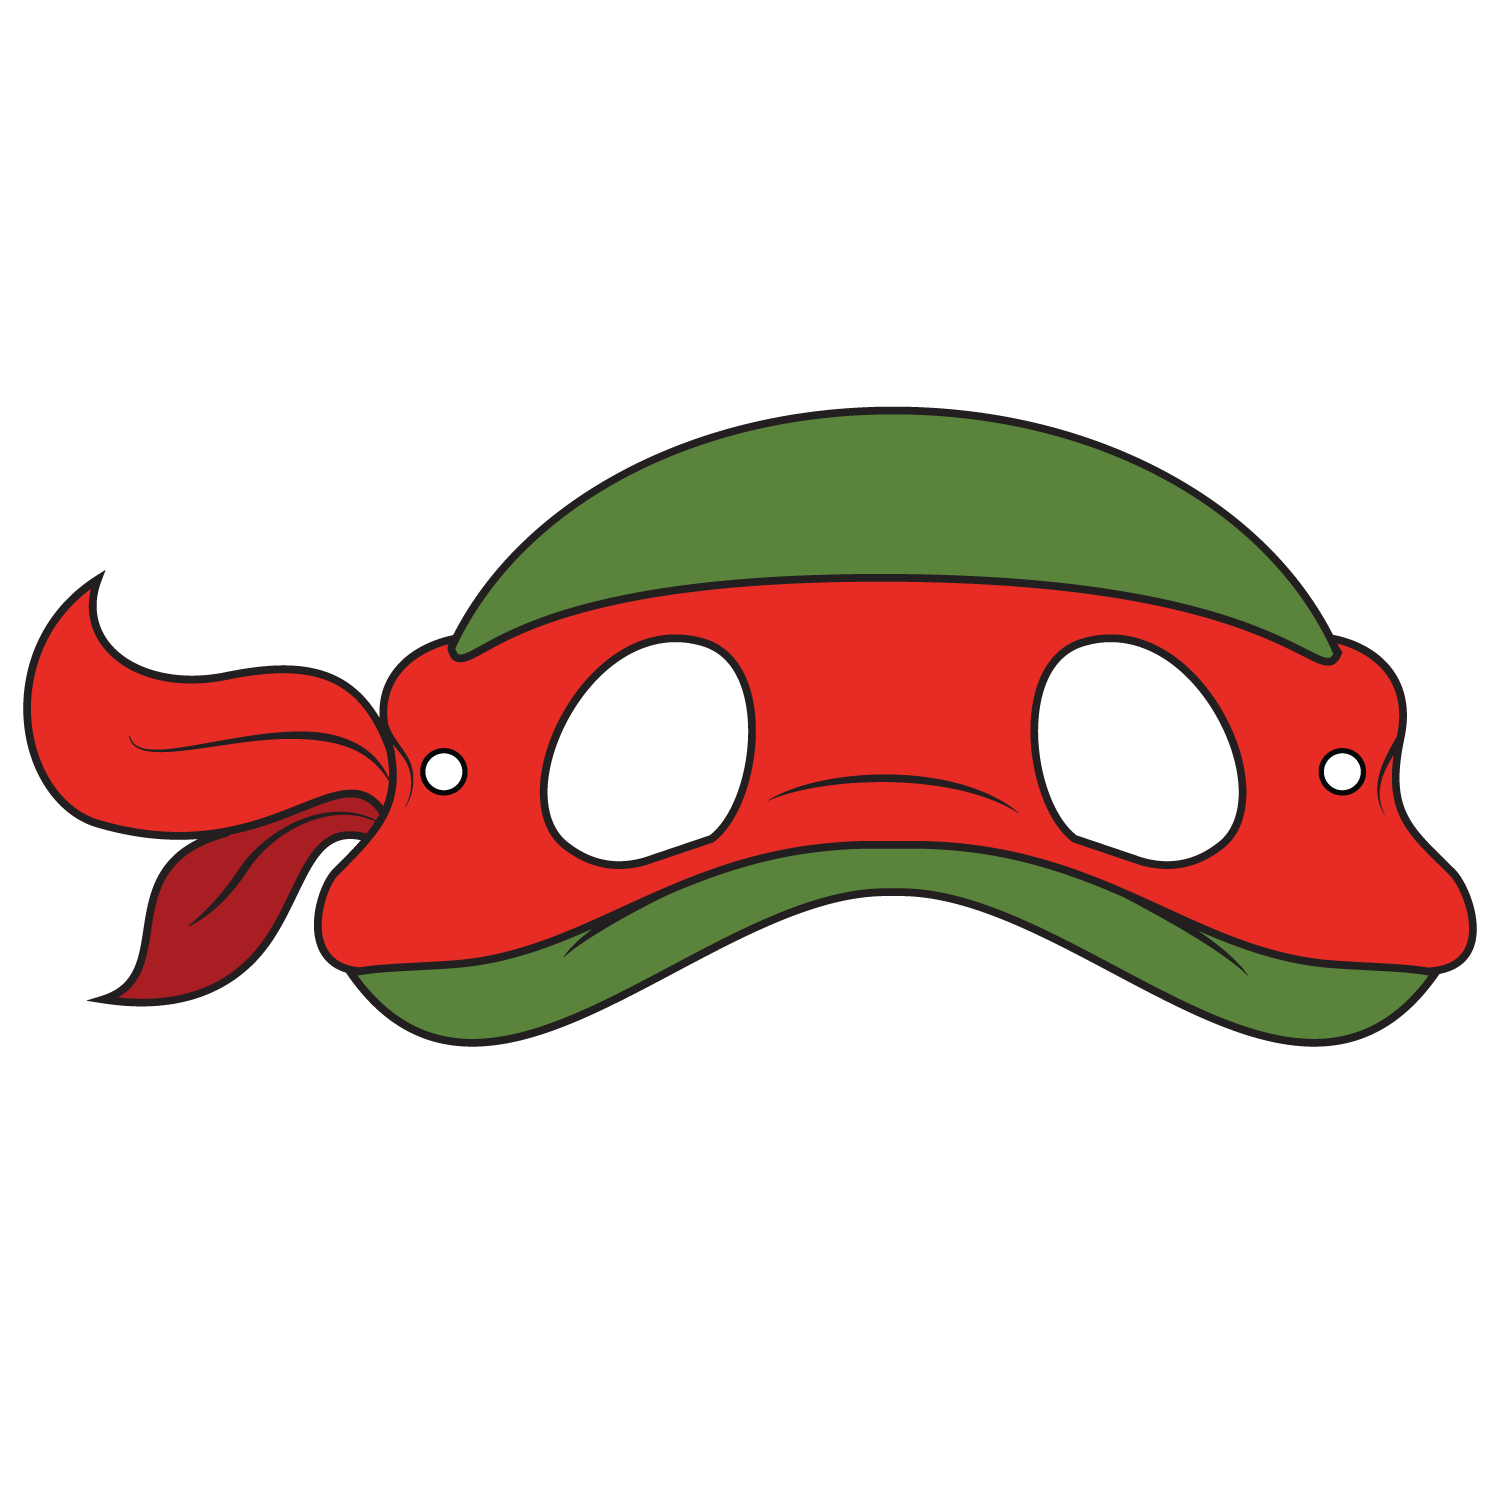 Teenage Mutant Ninja Turtles Mask Template | Free Printable - Teenage Mutant Ninja Turtles Free Printable Mask